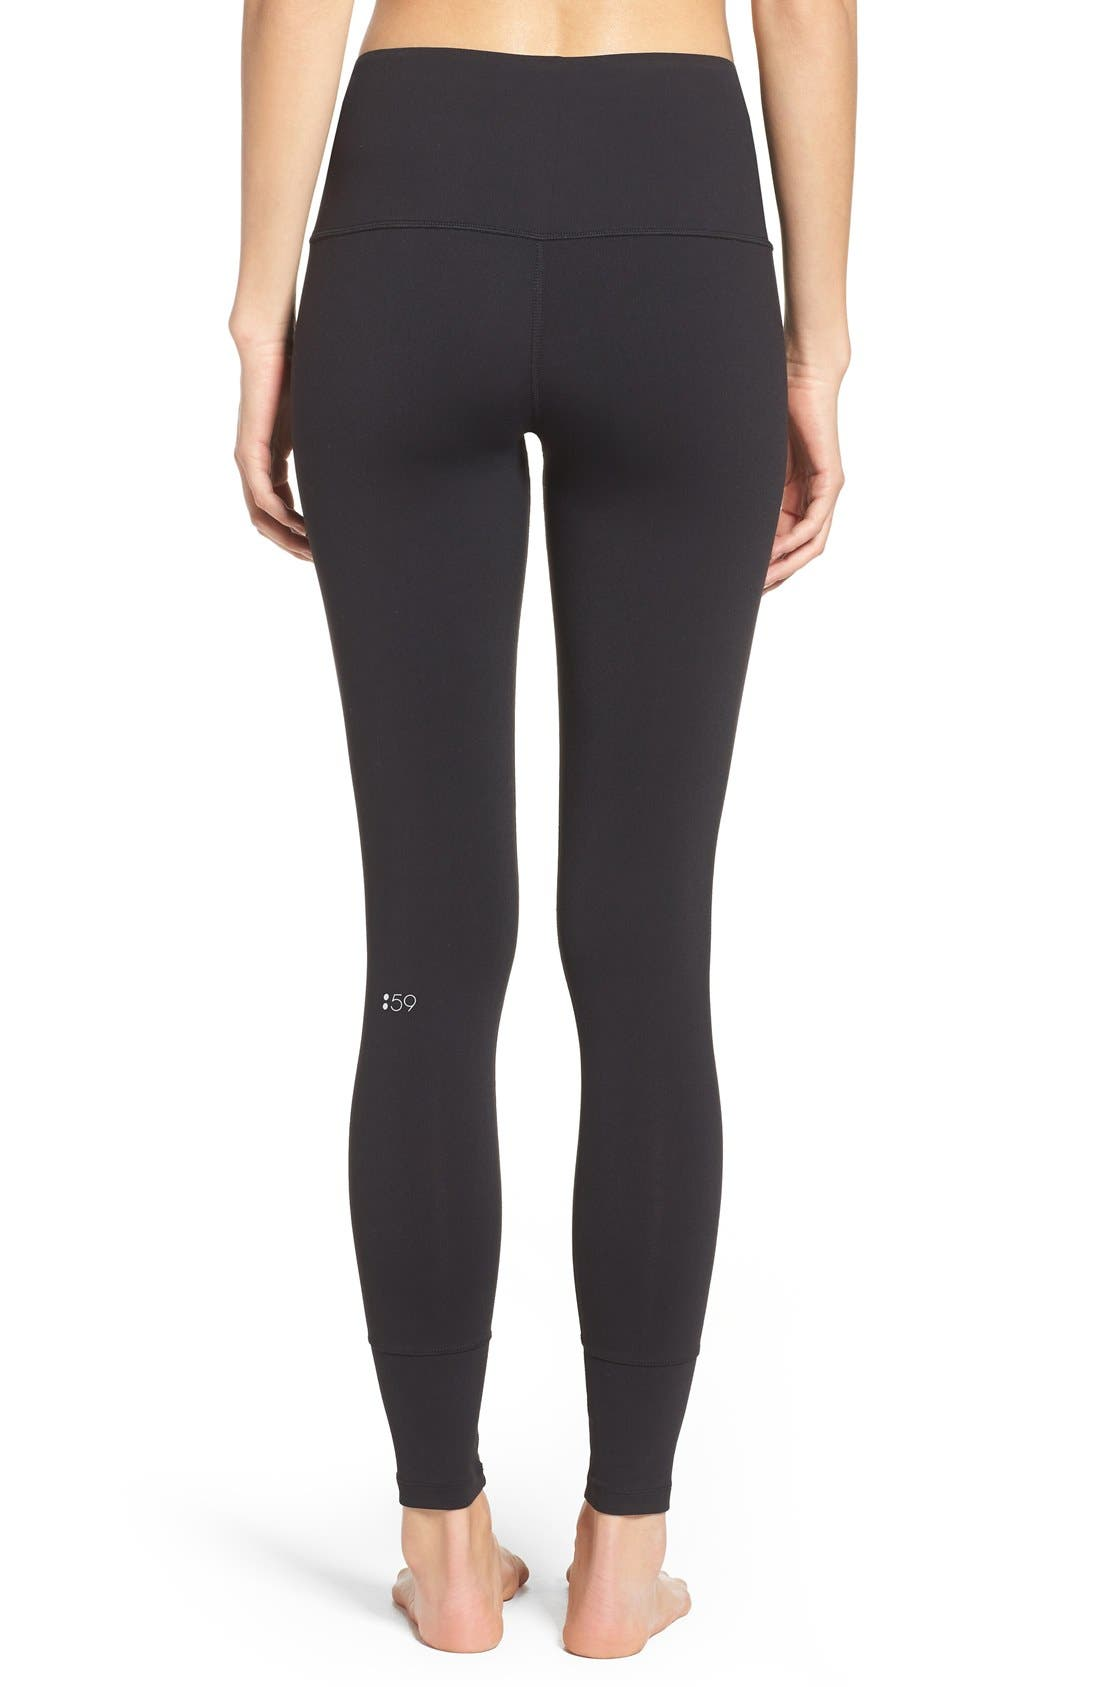 'Bardot' High Waist Leggings,                             Alternate thumbnail 6, color,                             001